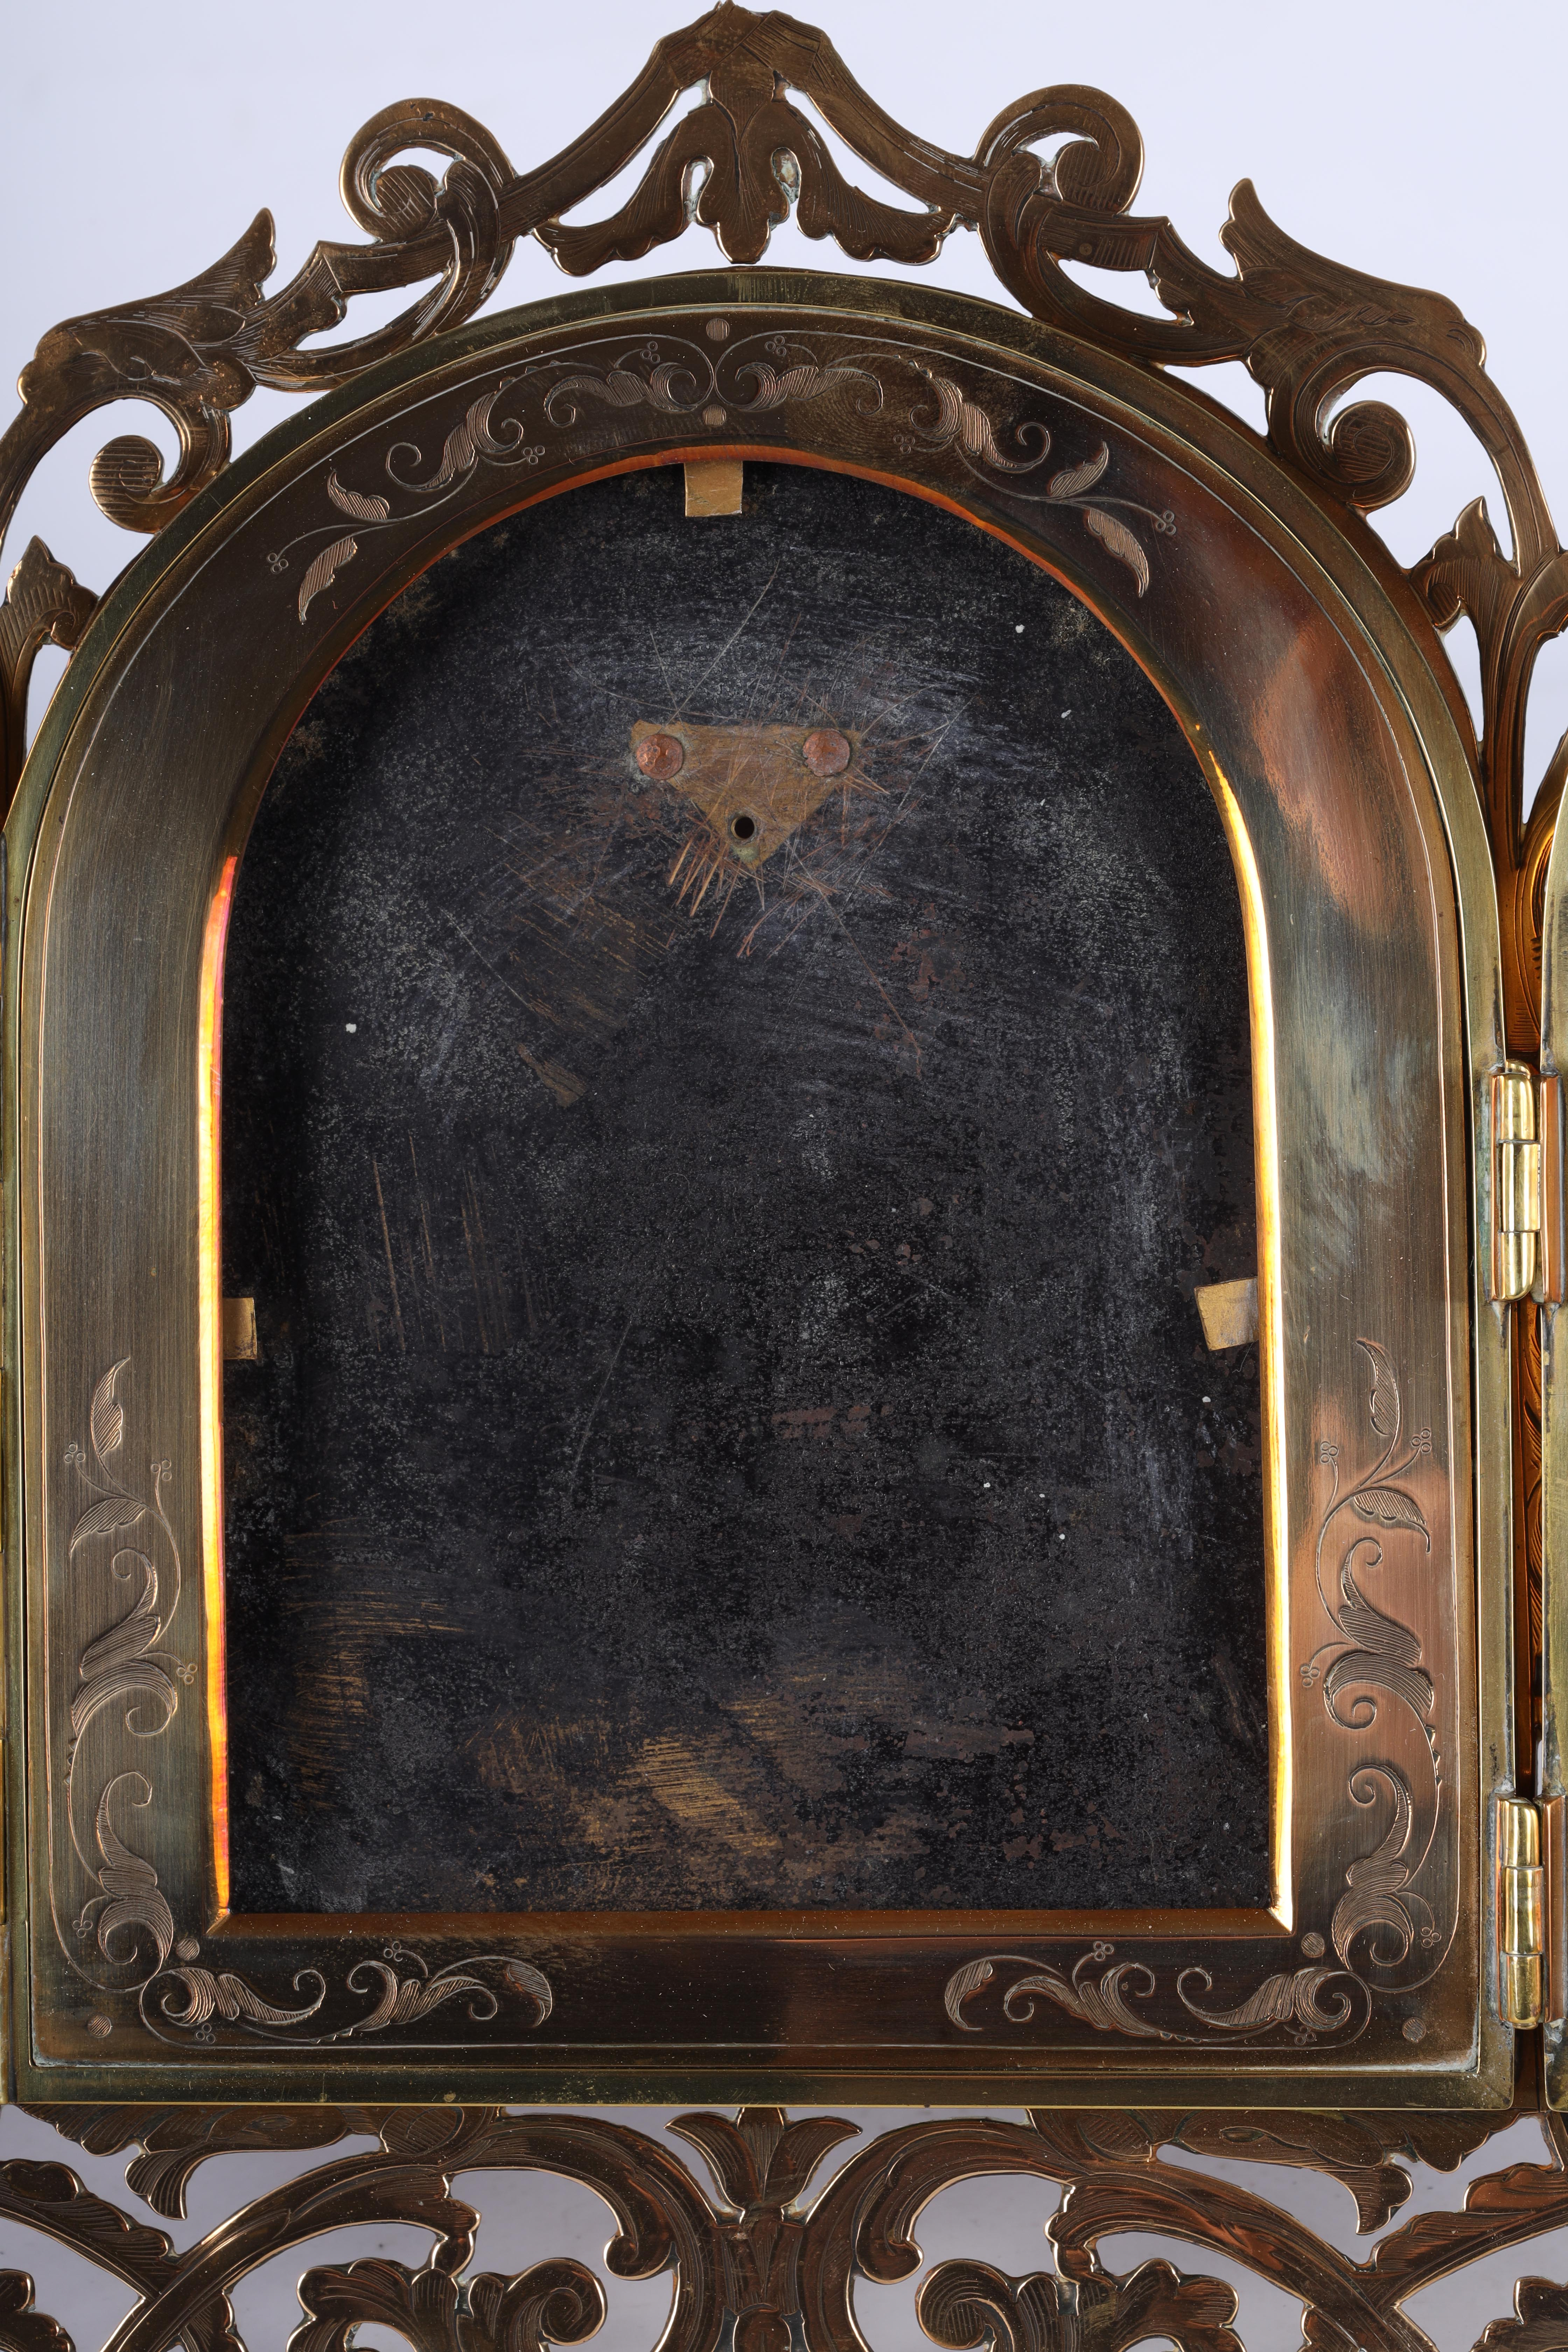 A LATE 19TH CENTURY PIERCED AND ENGRAVED BRONZE FOLDING PHOTOGRAPH FRAME the front with four - Image 5 of 8